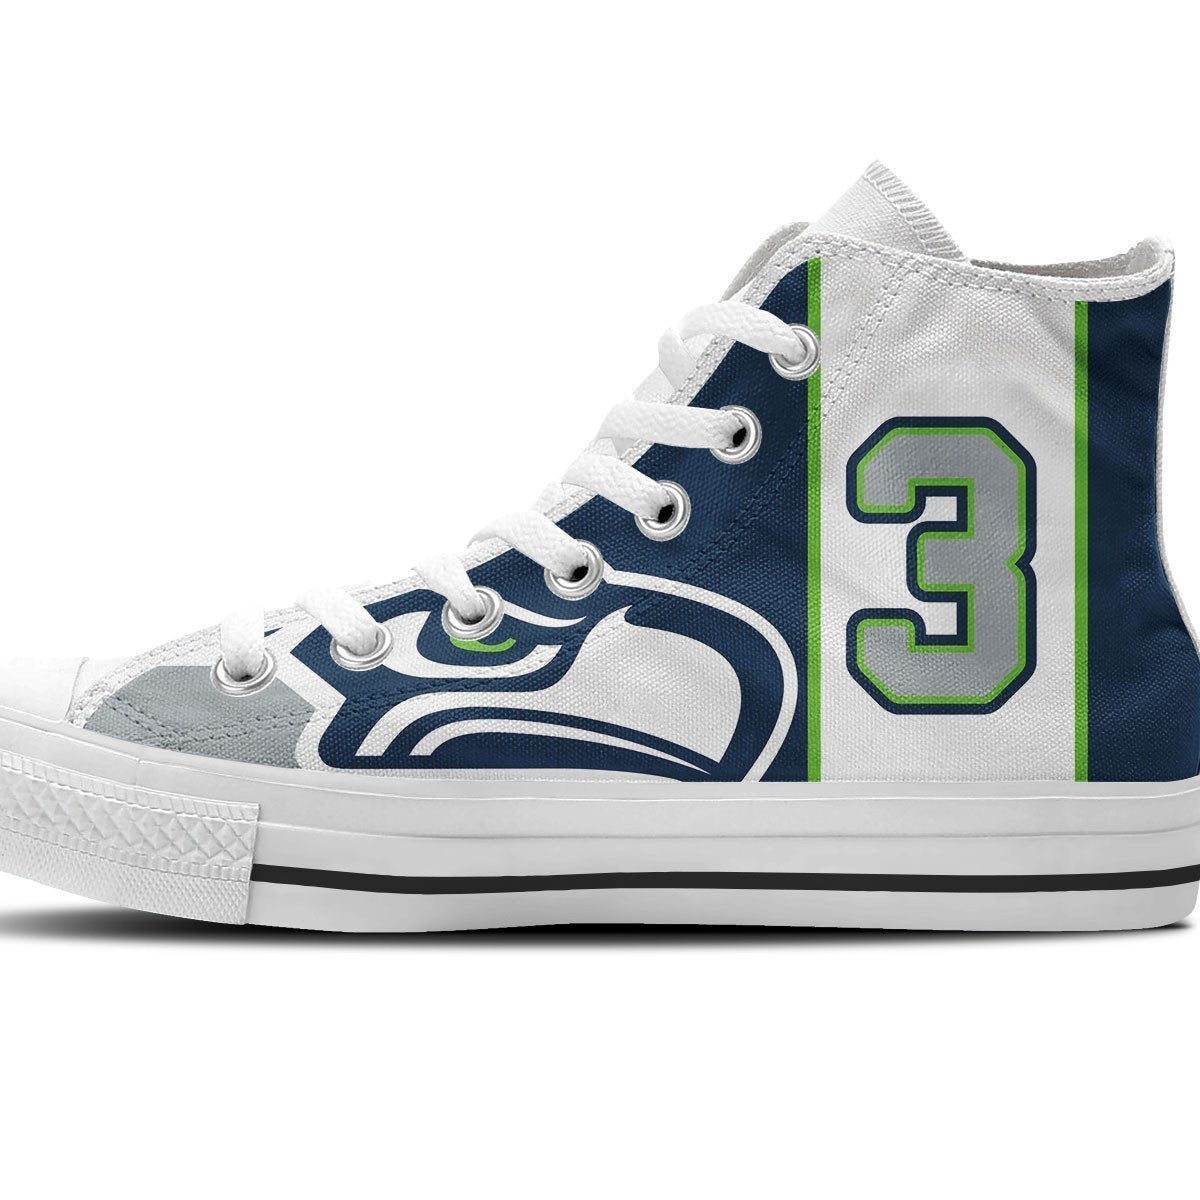 russell wilson ladies high top sneakers